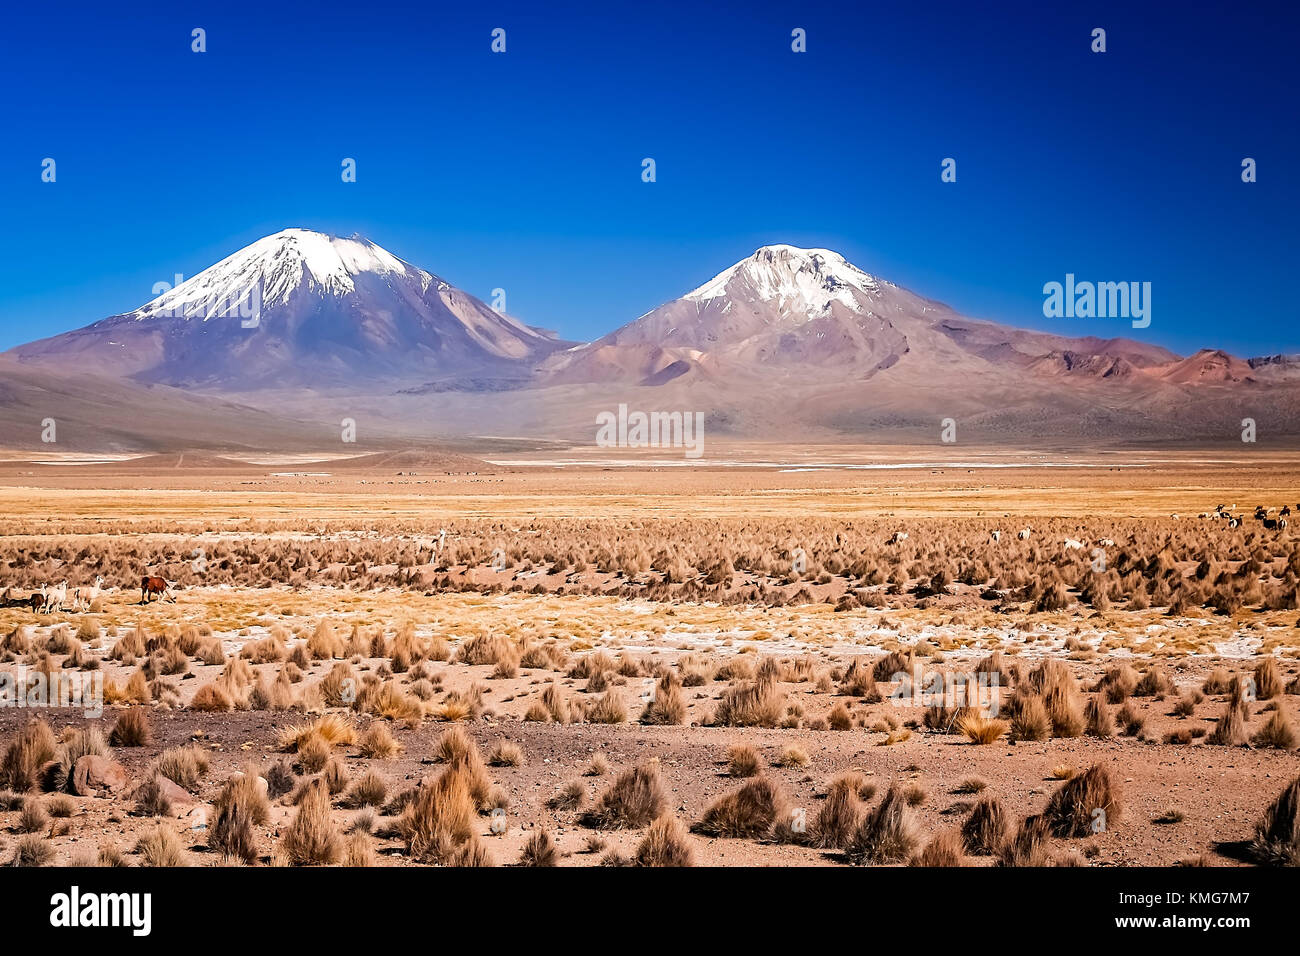 Enorme Vulkan Nevado Sajama und Parinacota Vulkane in Nationalparks in Chile und Bolivien entfernt Stockbild